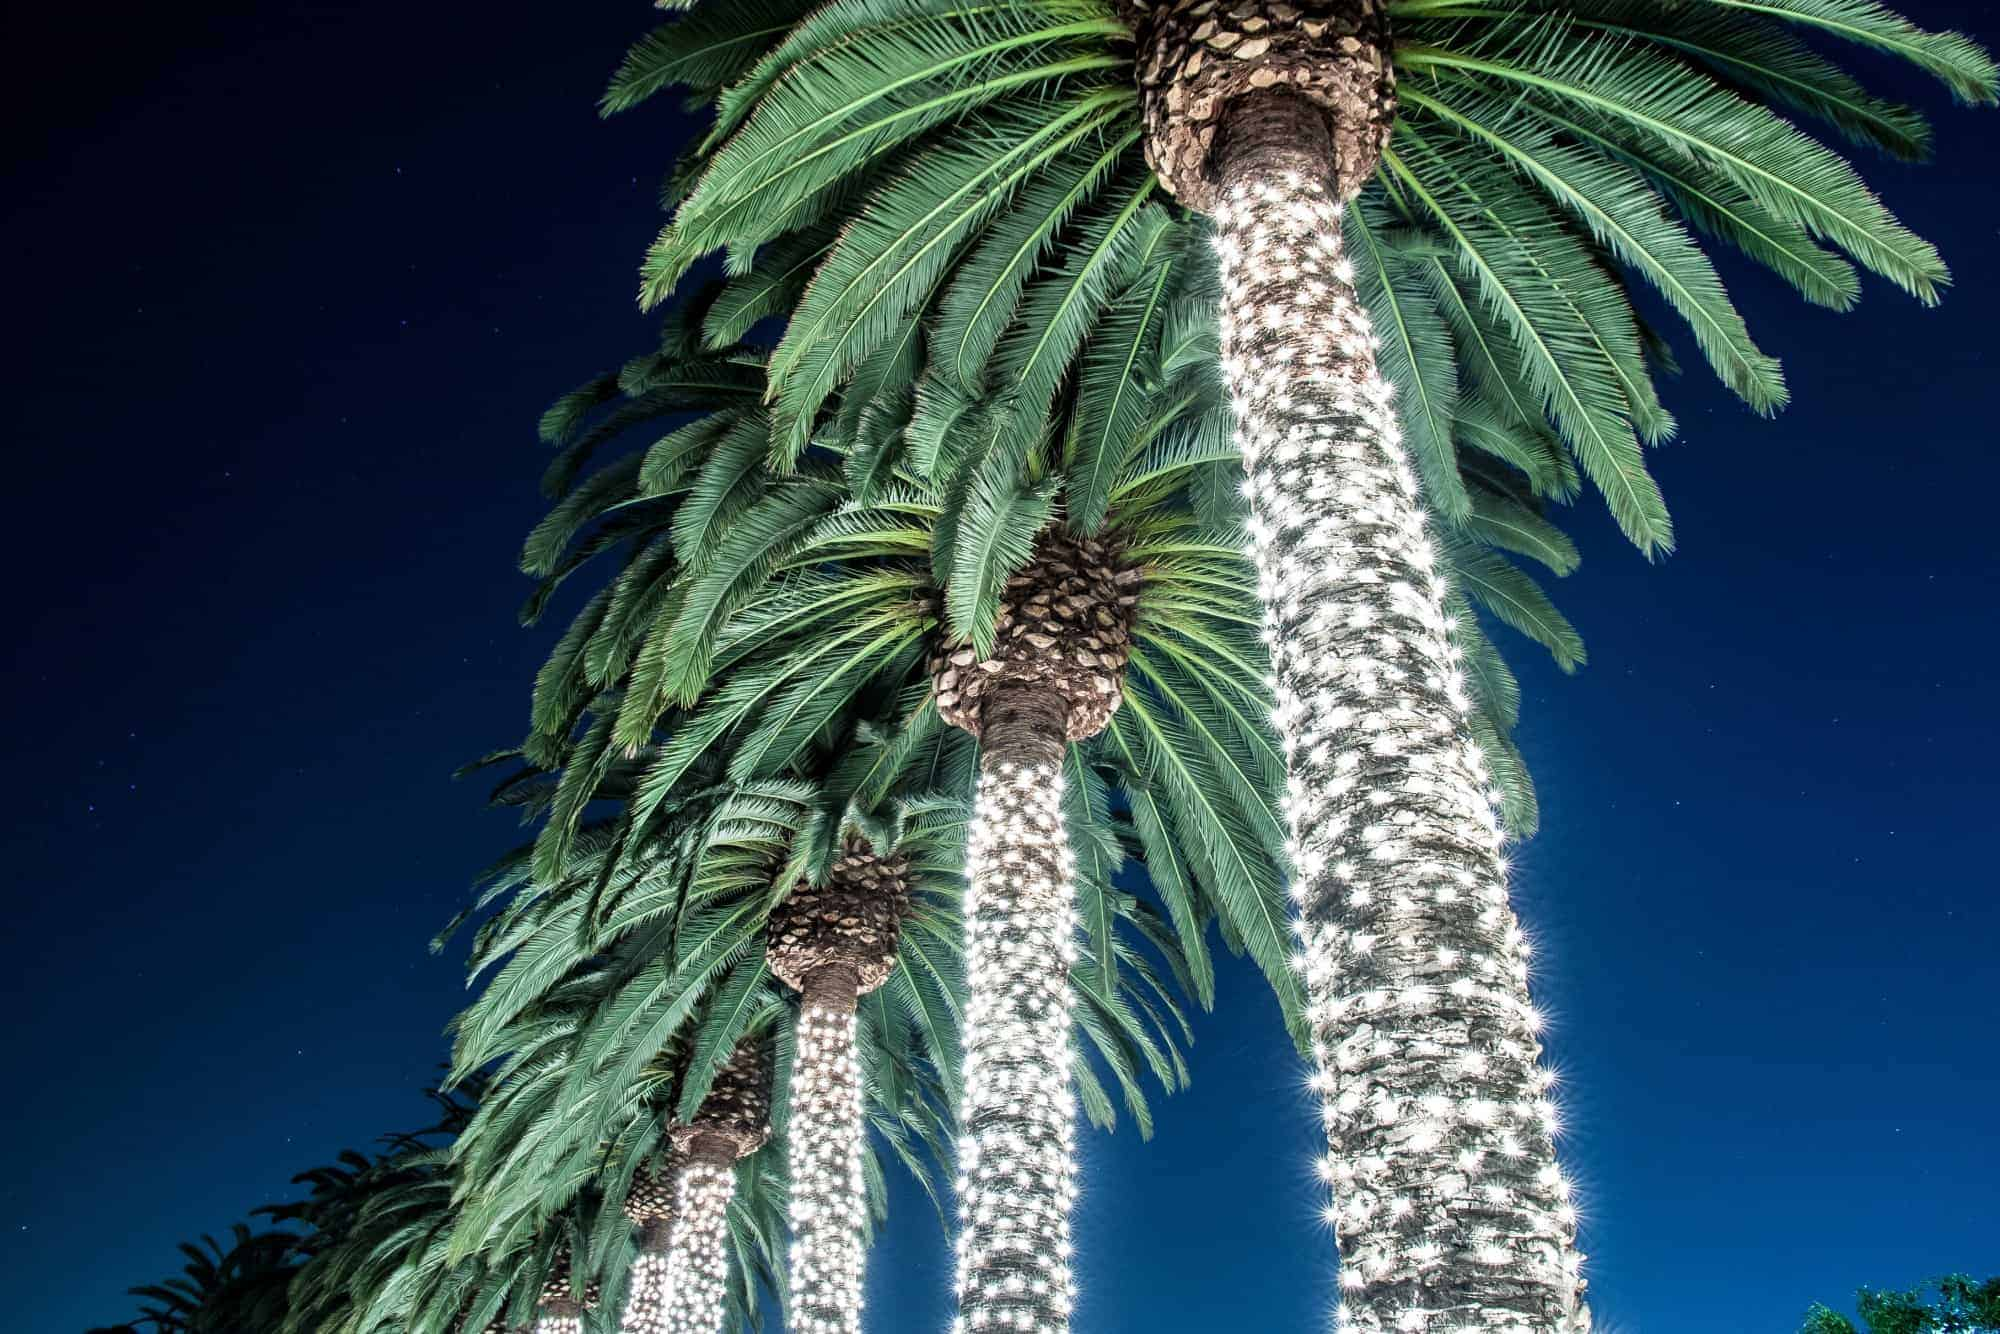 Palm-Springs-Christmas-Holiday-Family-Lights-Shutterstock